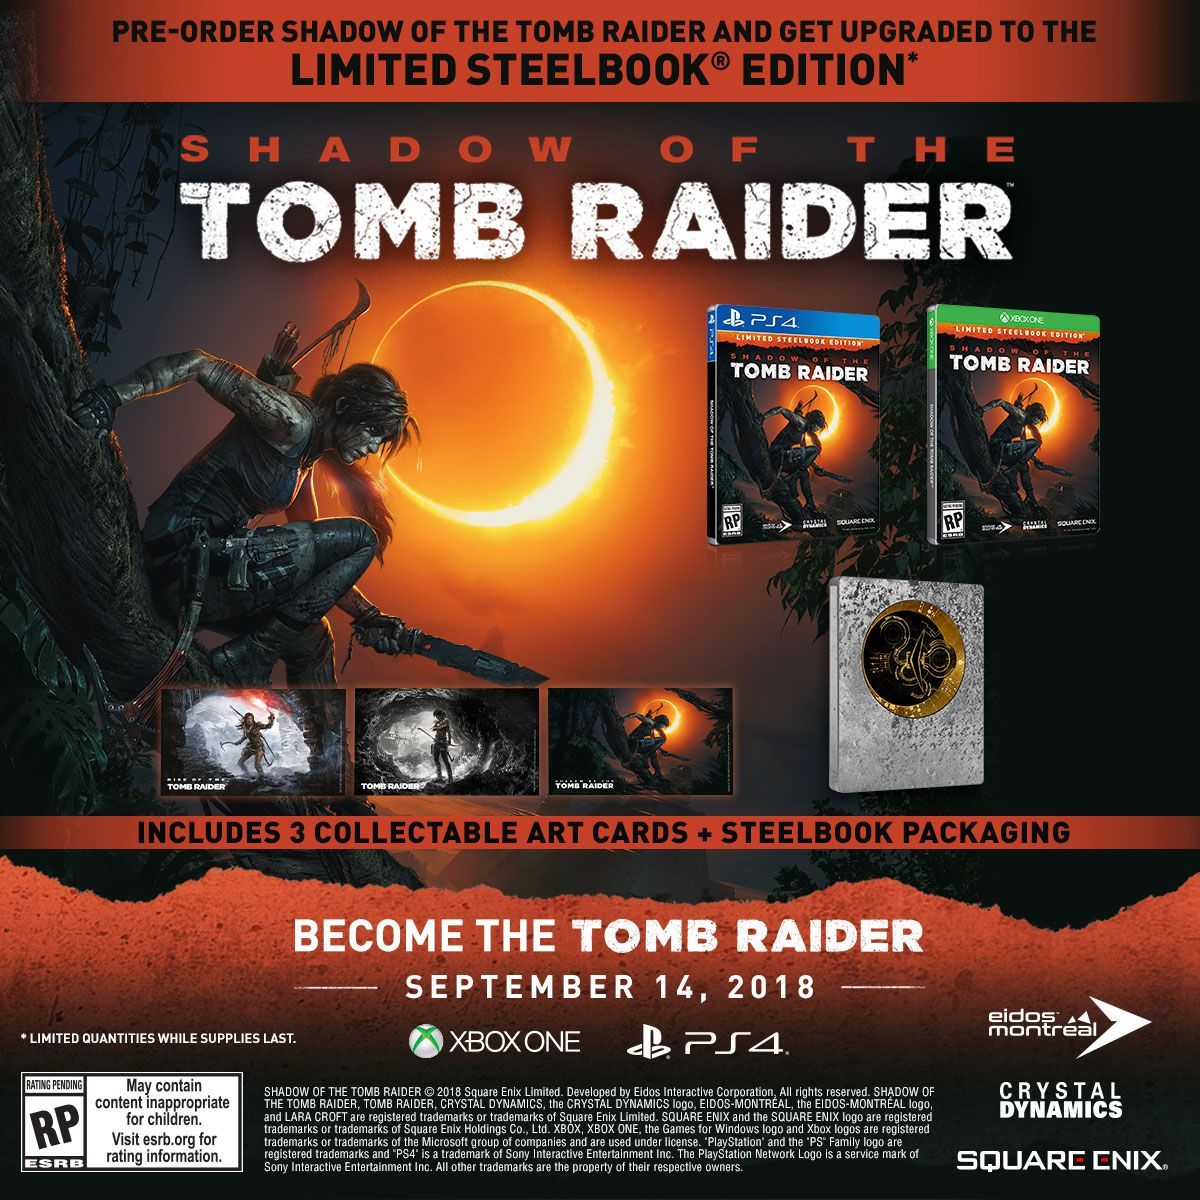 Shadow of the Tomb Raider Steelbook Editions